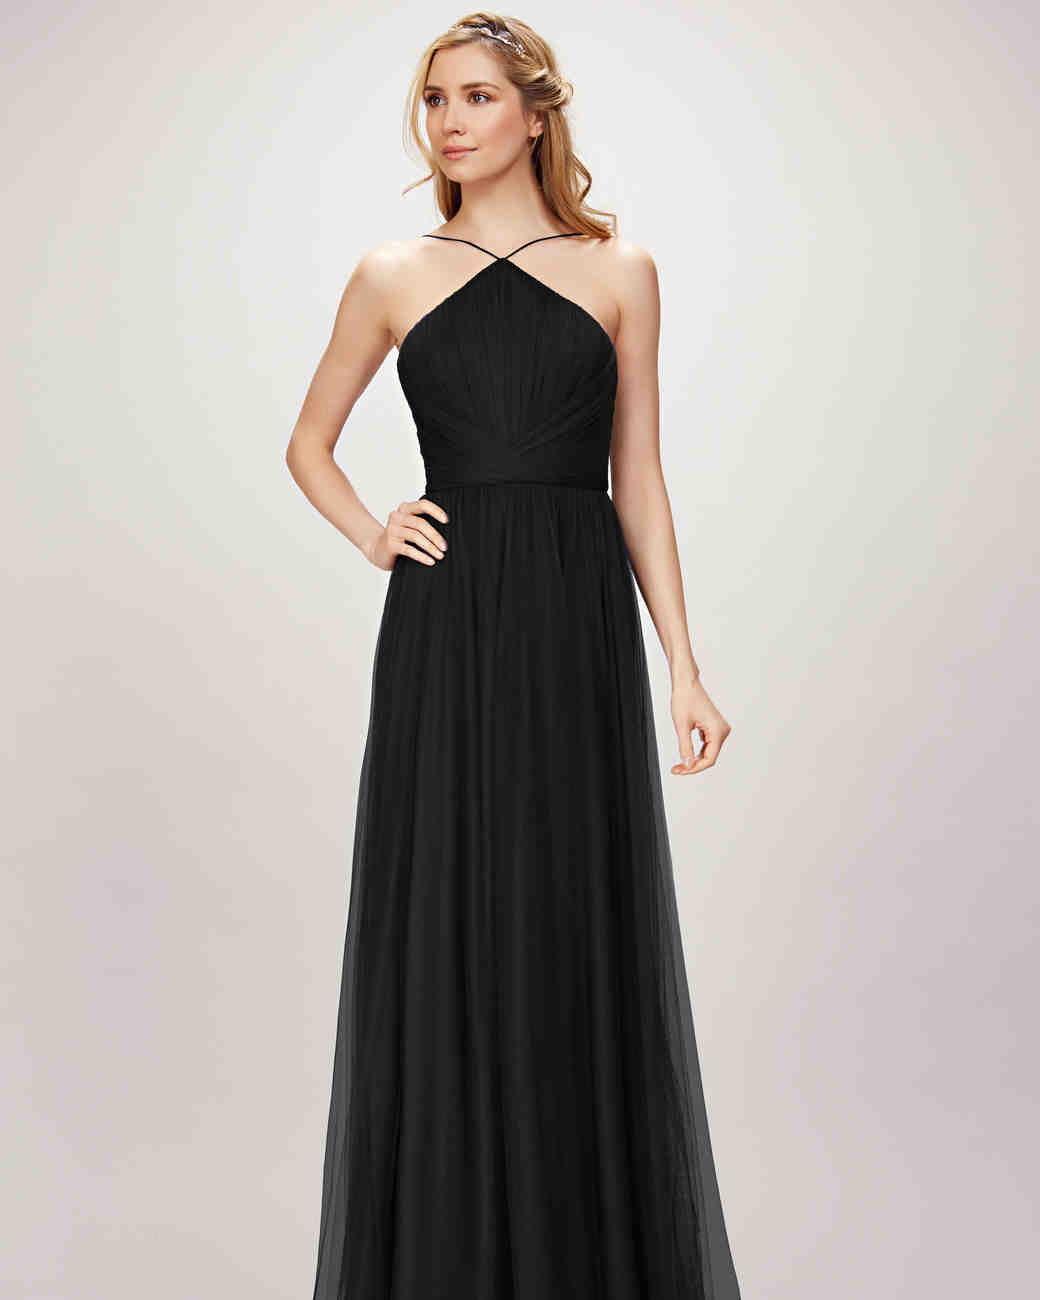 9a8fa70041e0 Chic Black Bridesmaid Dresses | Martha Stewart Weddings